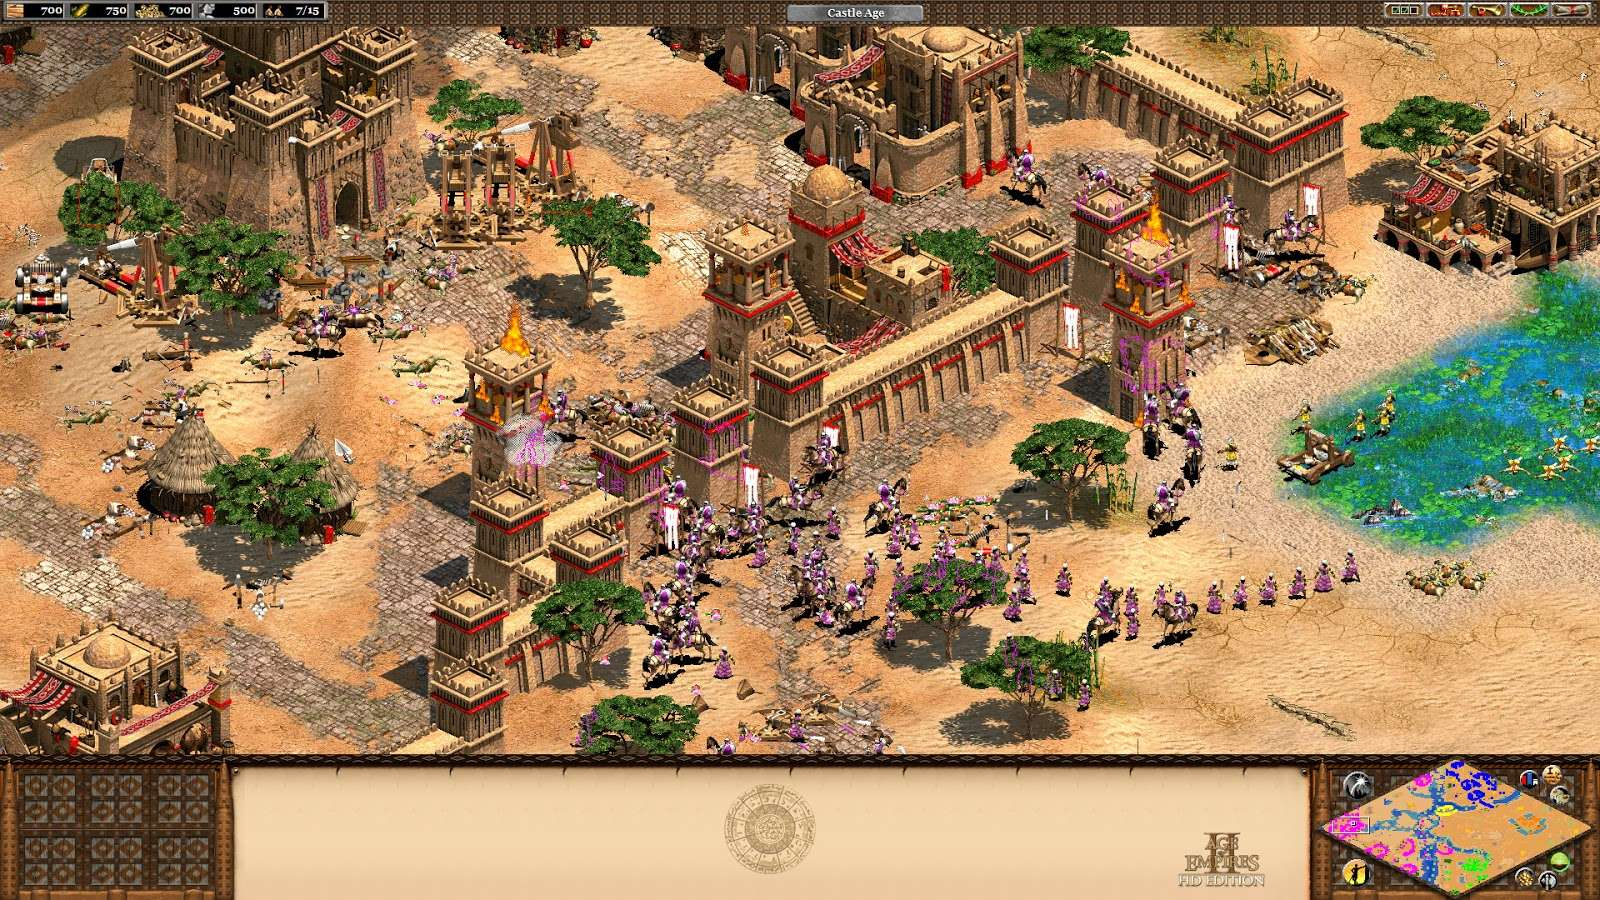 AoE Gameplay 2